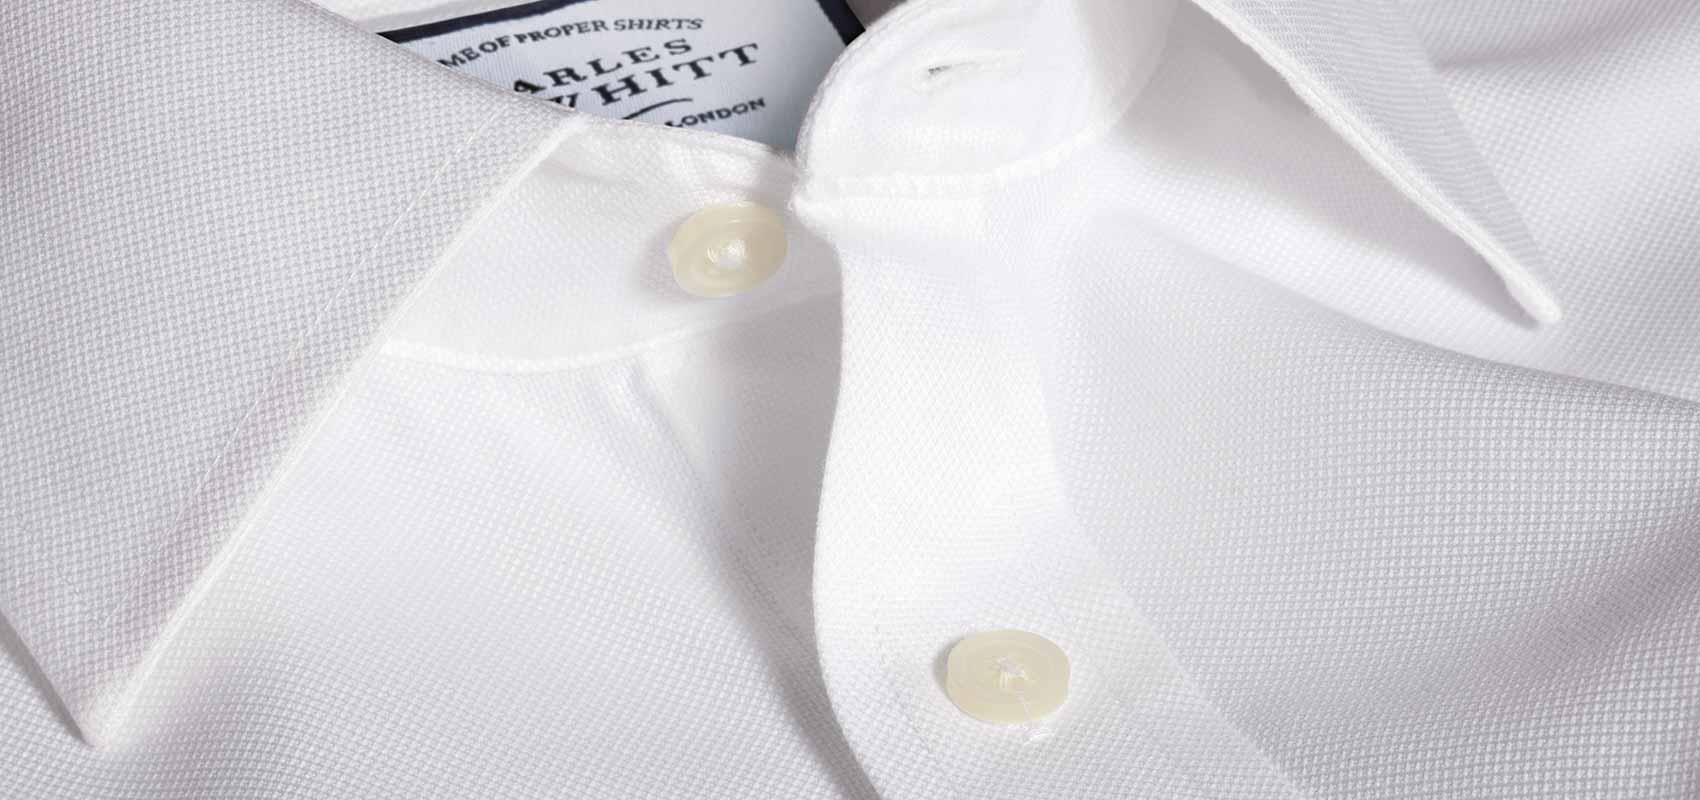 Charles Tyrwhitt Collection chemises blanches